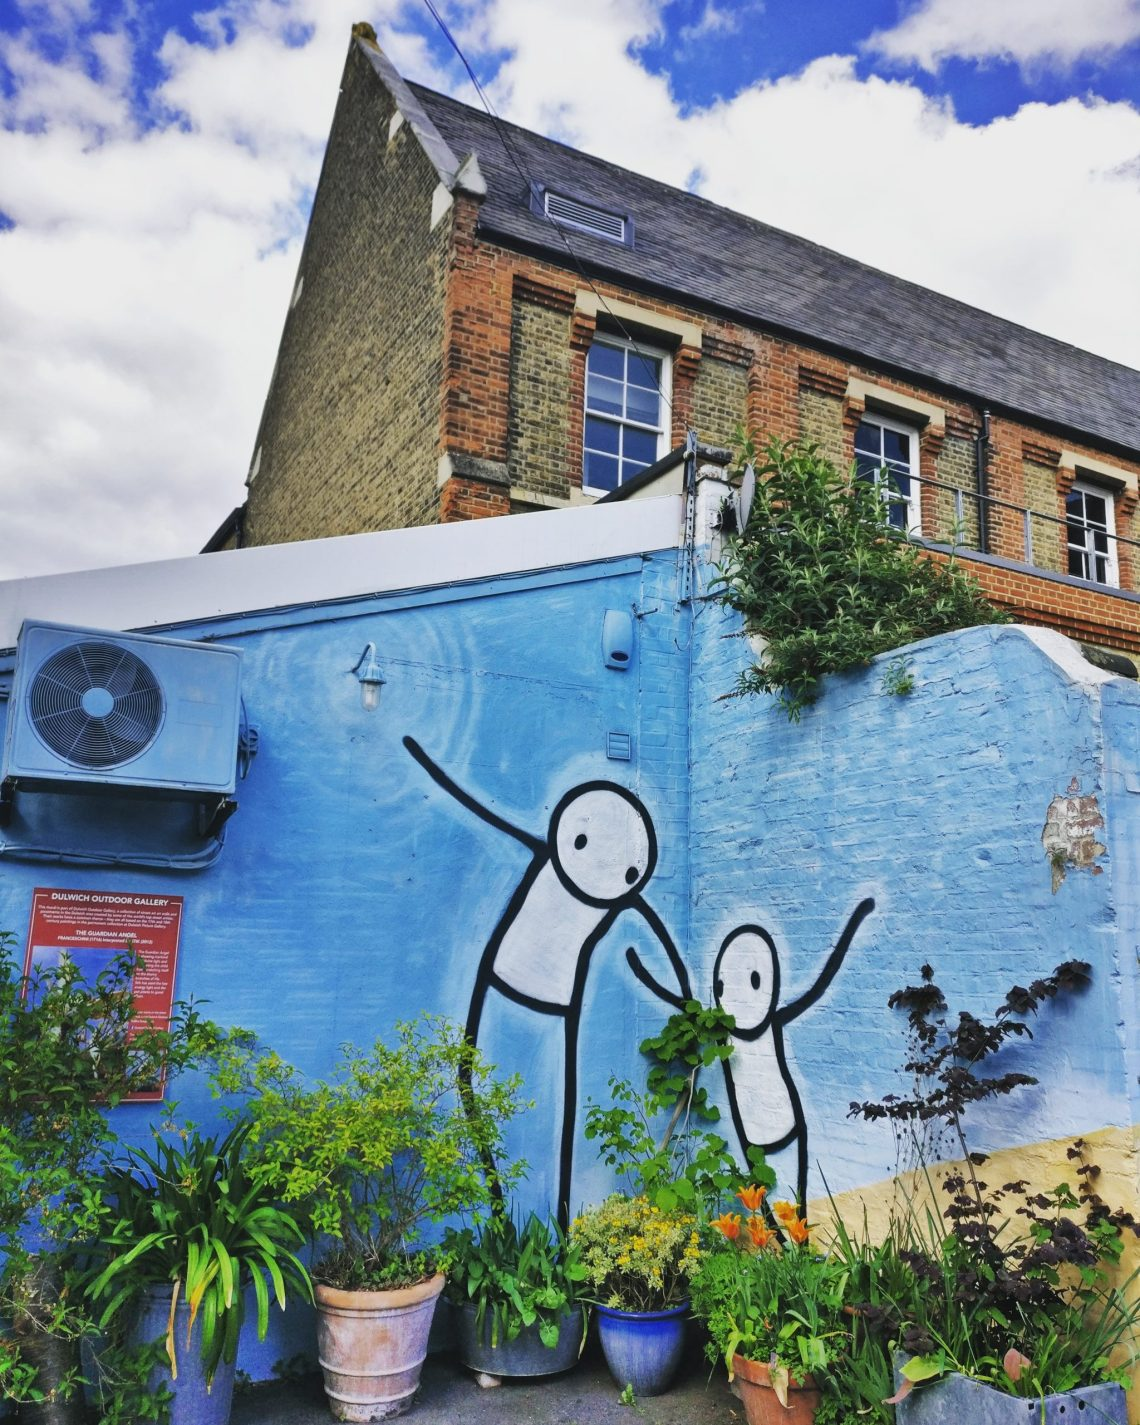 A Mural by Stik created as part of the Dulwich Outdoor Gallery which Ingrid Beazley curated